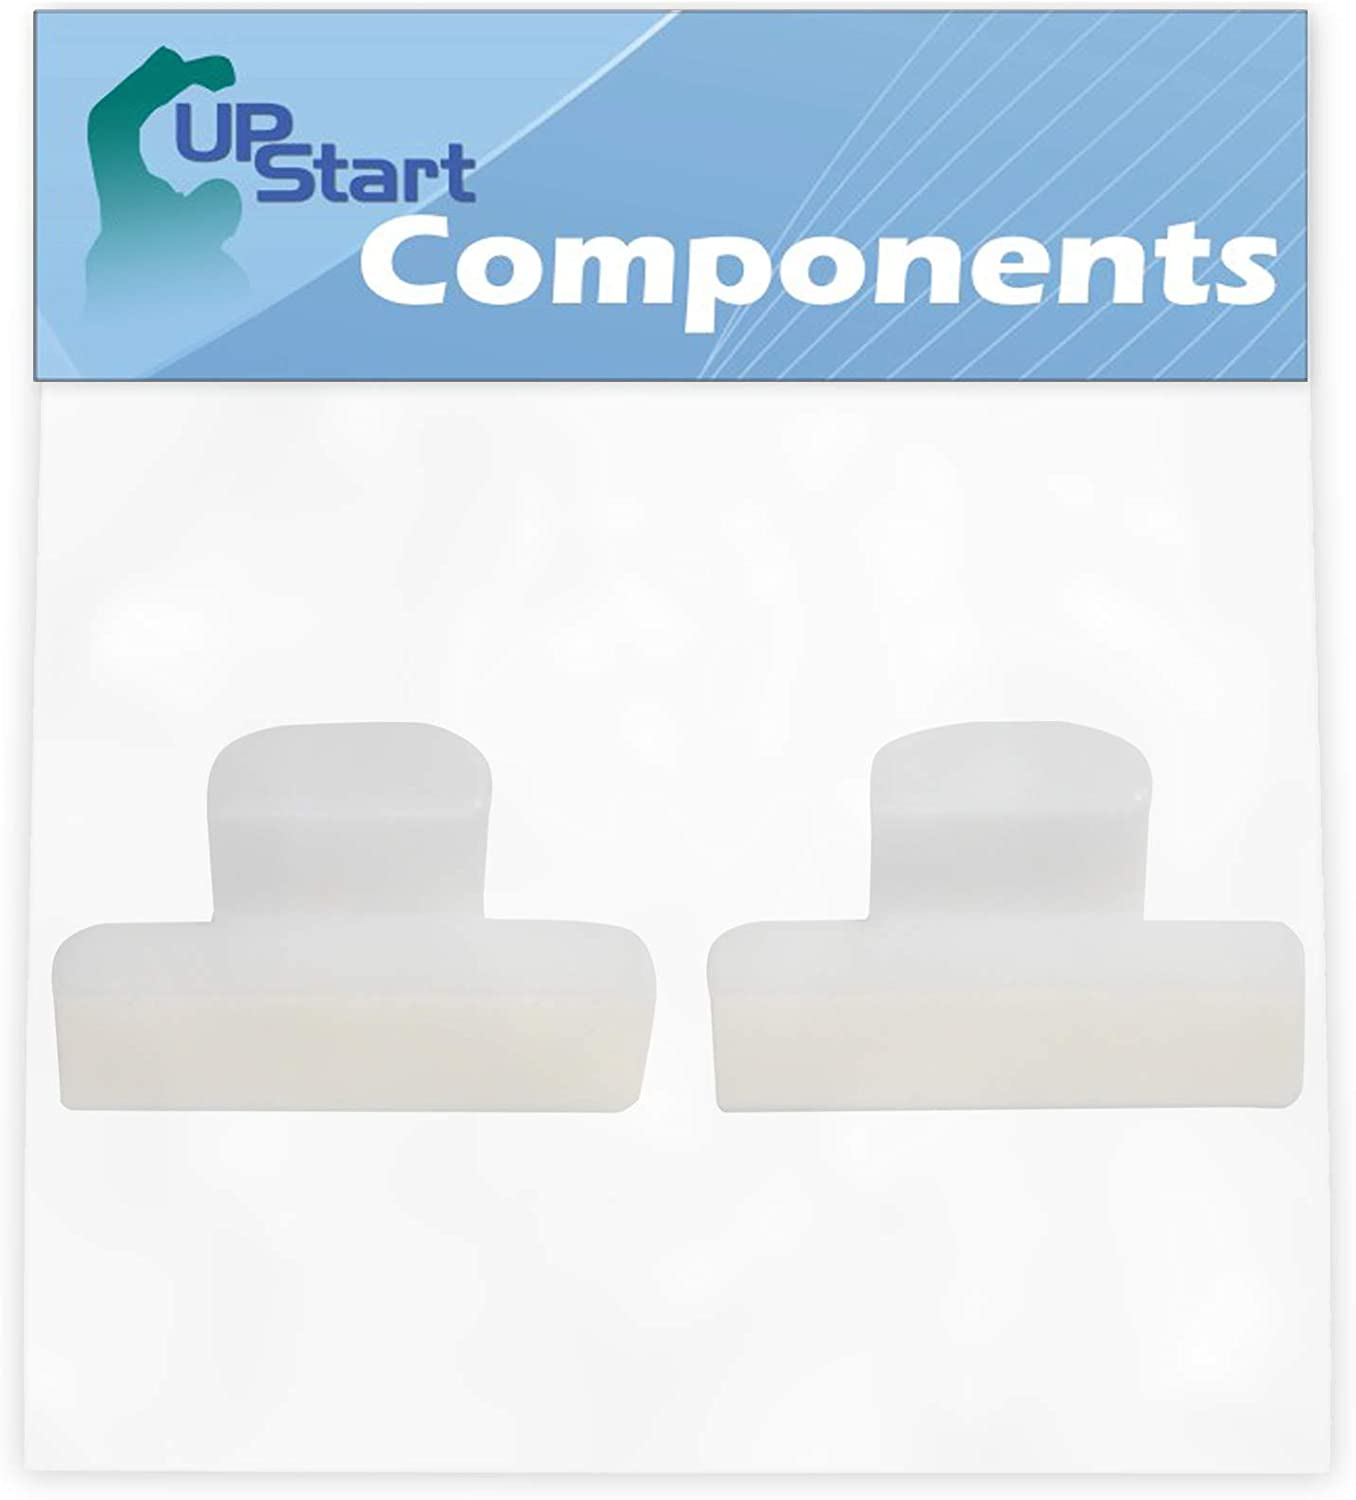 2 Pieces 154701001 Dishwasher Splash Shield Replacement for Frigidaire FGBD2451KF0 - Compatible with 154701001 Splash Shield Kit